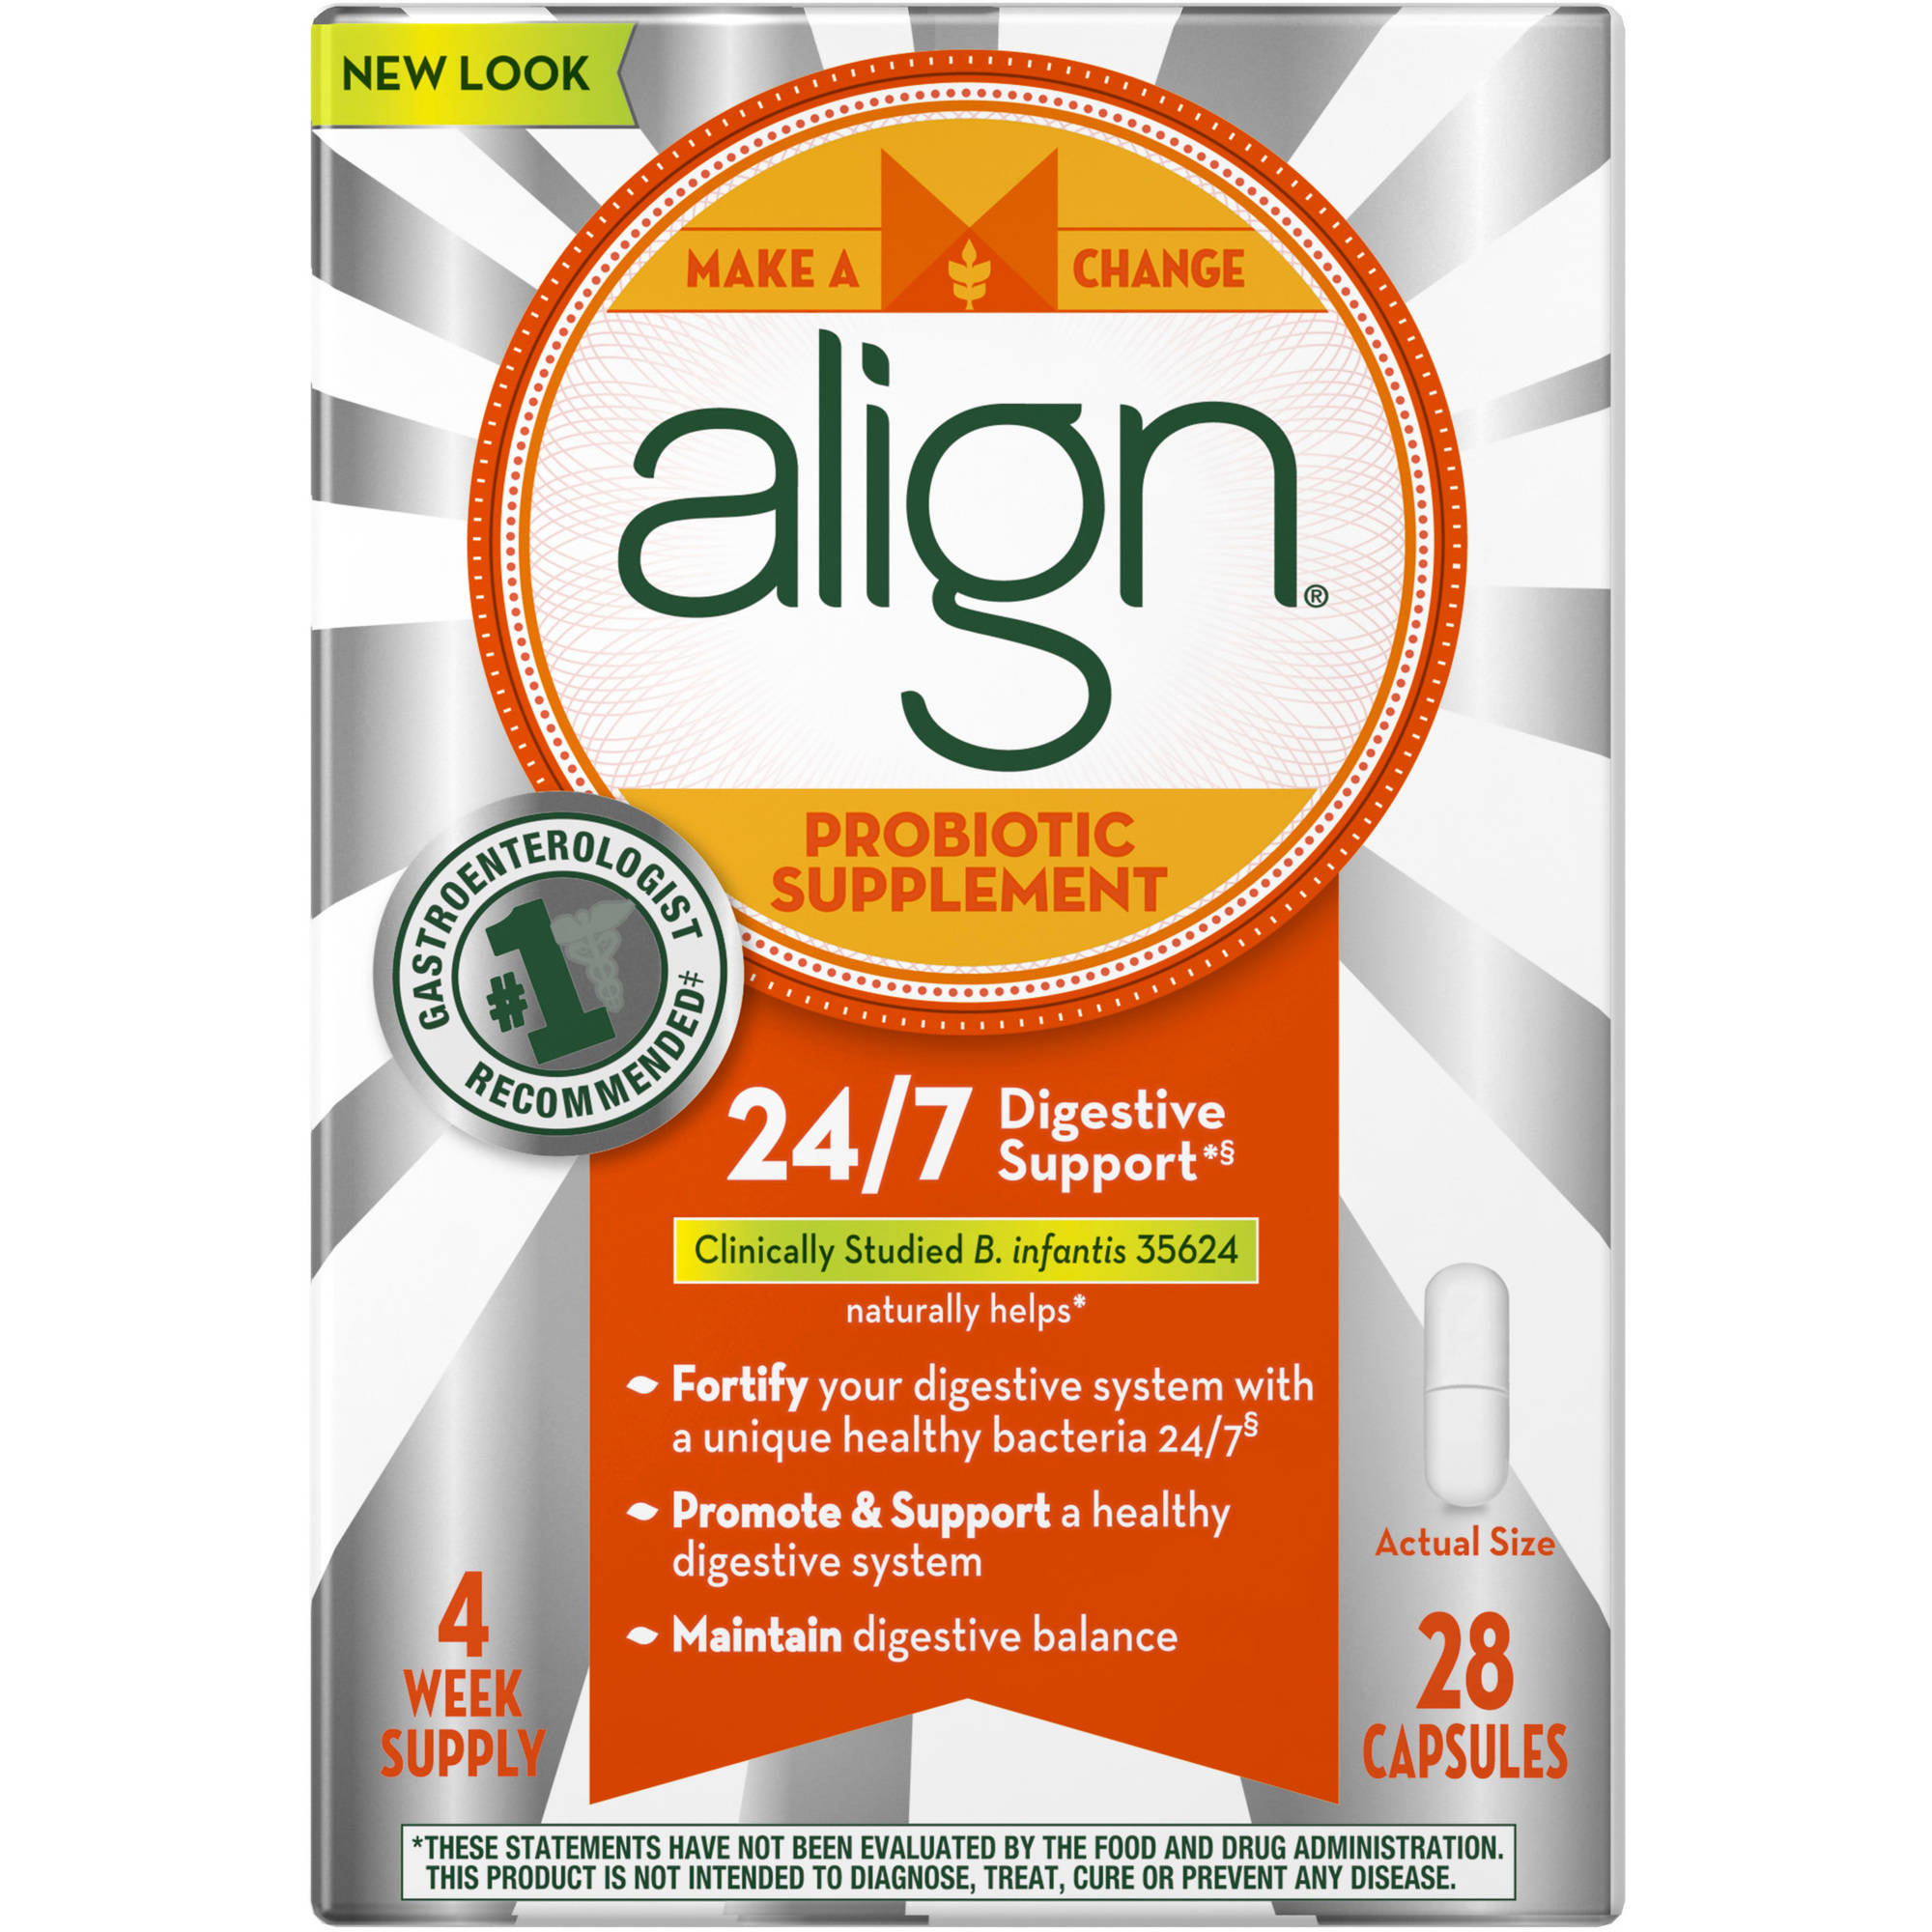 Align Probiotic Supplement Capsules, 28 Count